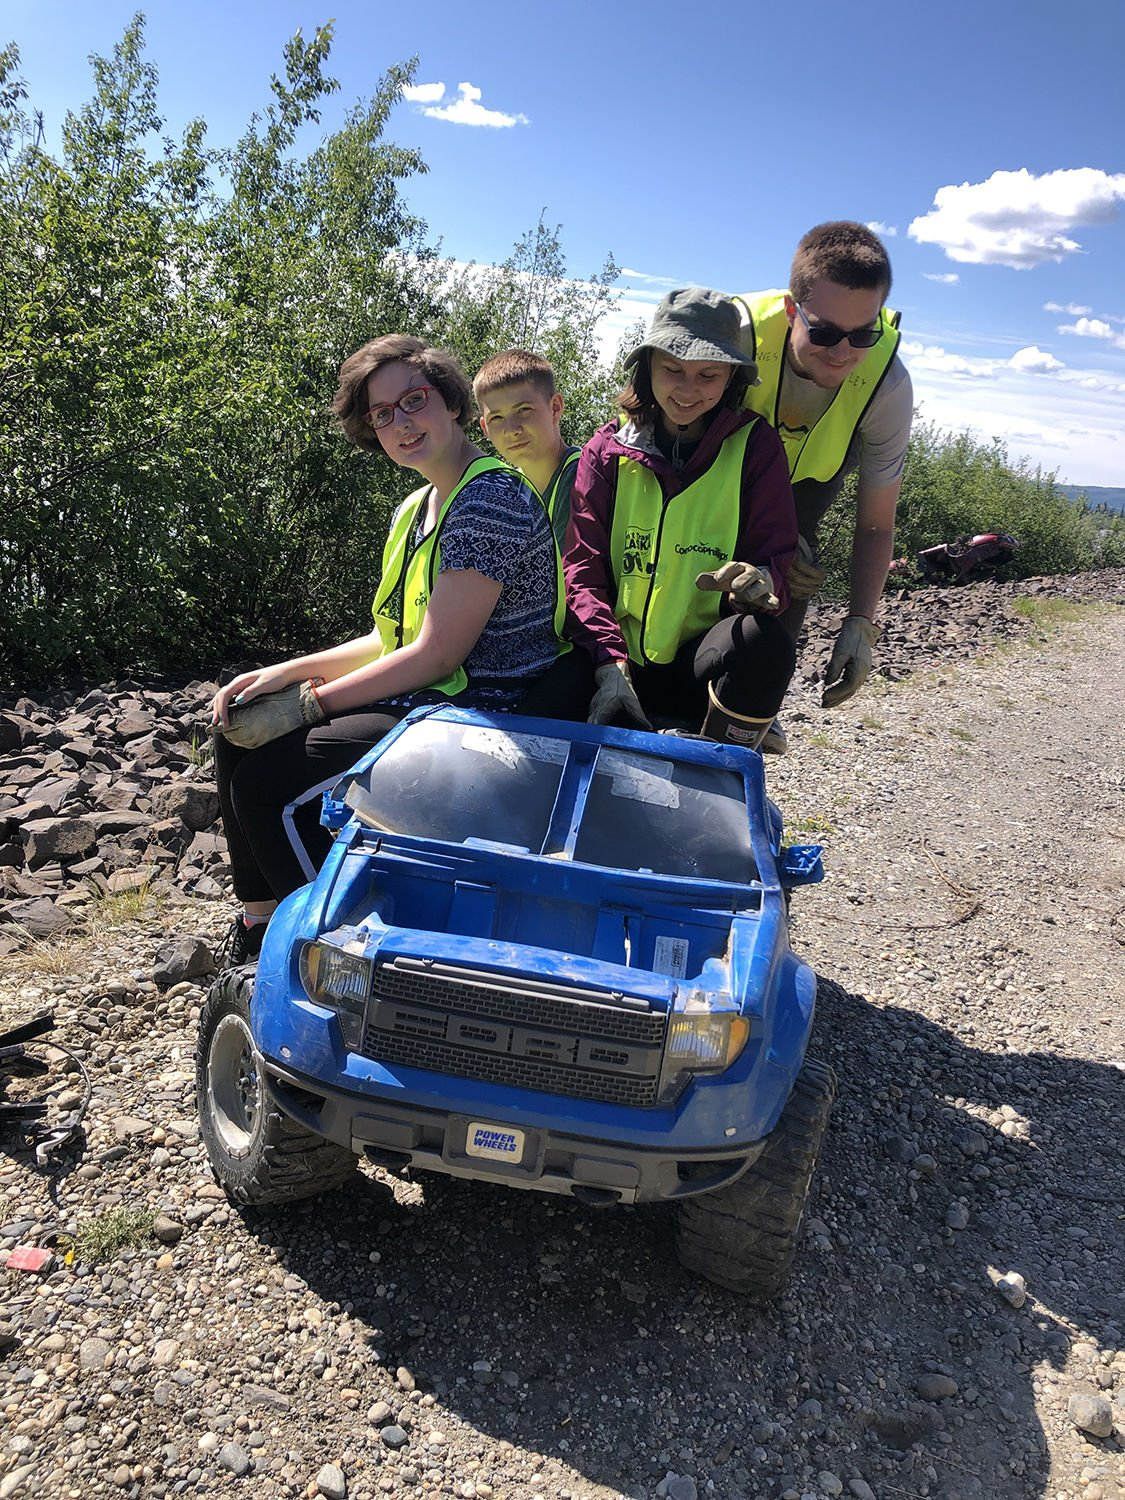 Youth Litter Patrol